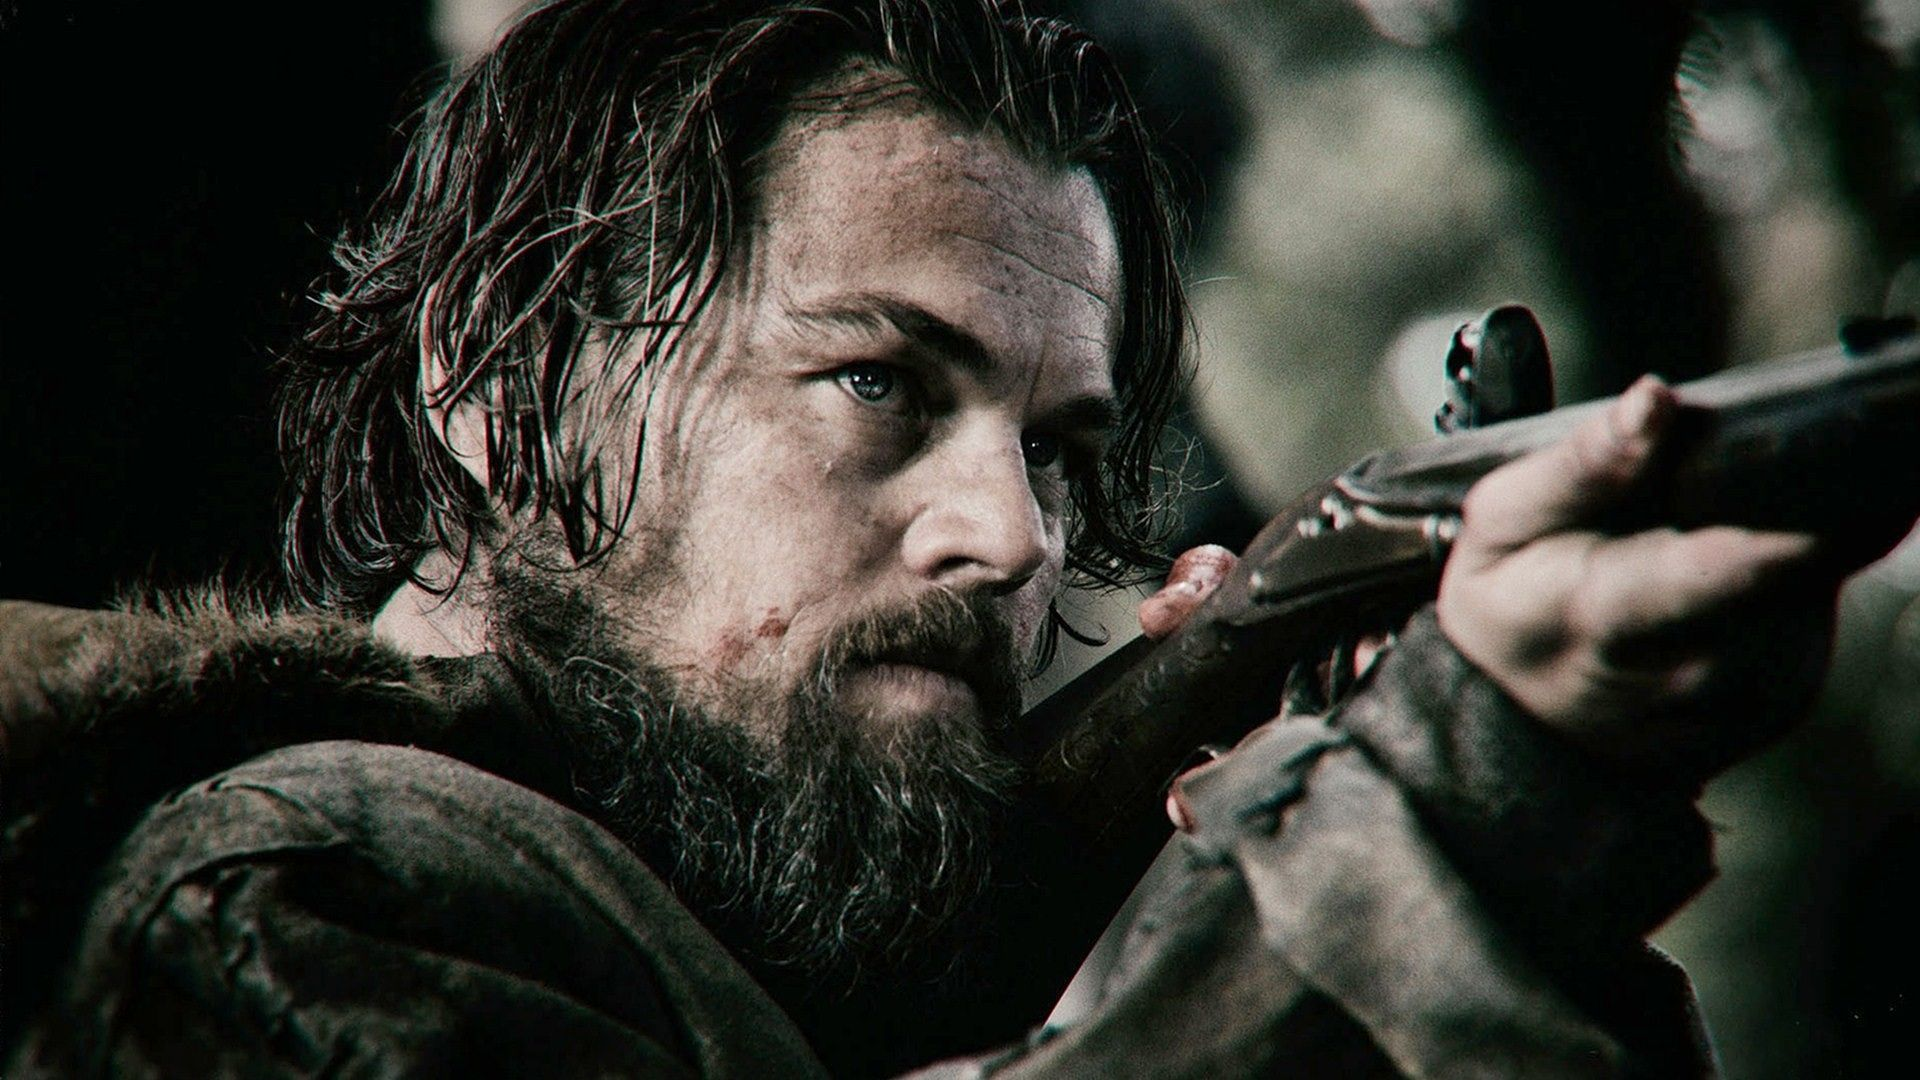 GOLDEN GLOBES 2016 - THE REVENANT Image du film Leonardo